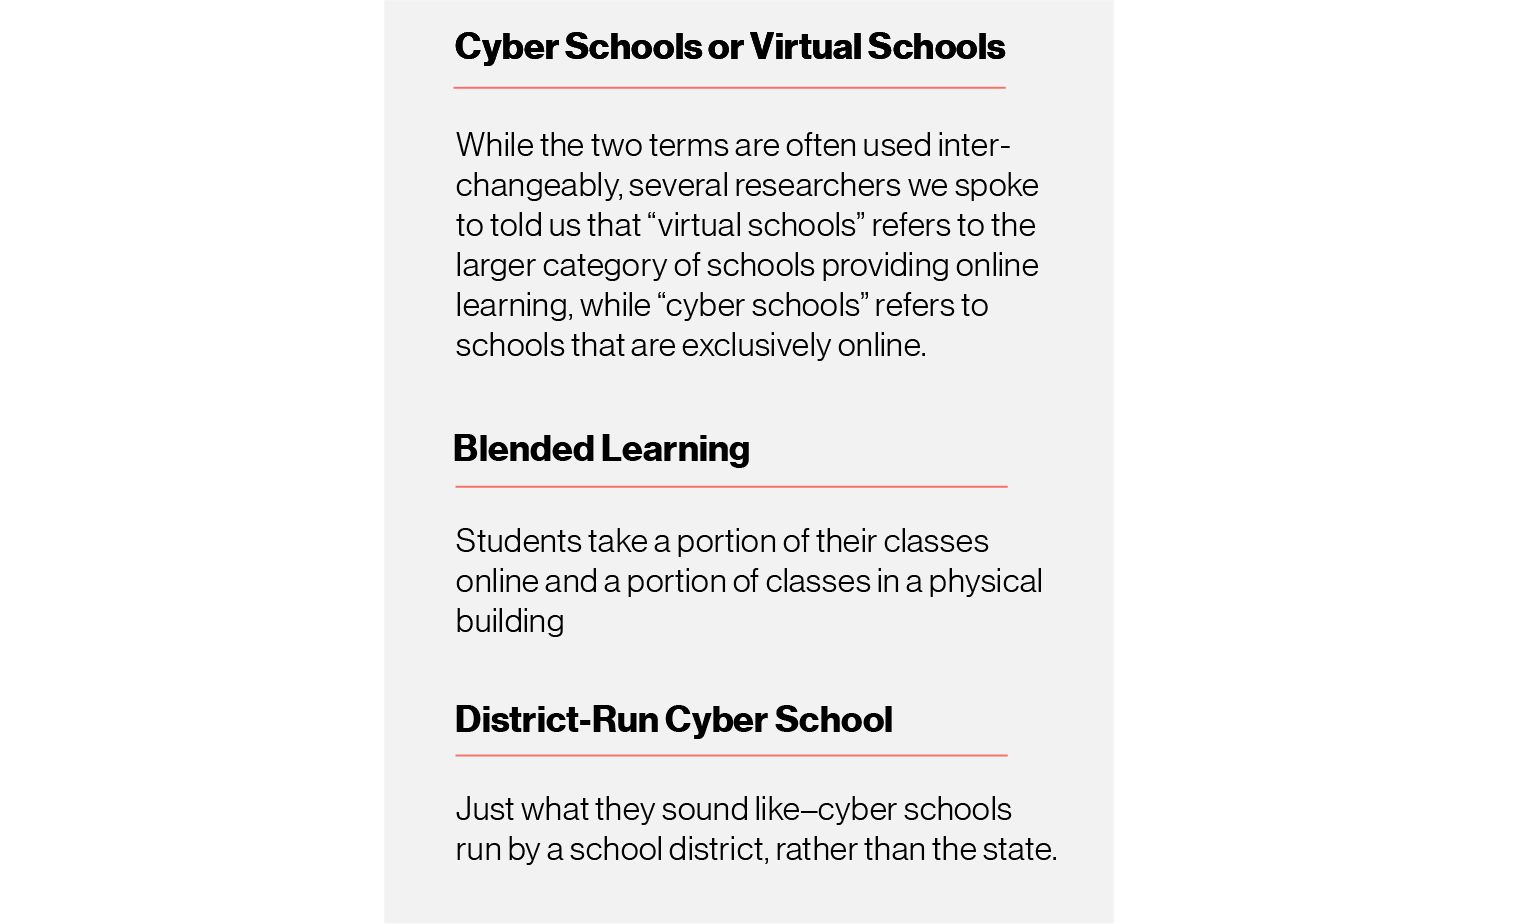 Graphic: Cyber schools or virtual schools definition — While the two terms are often used interchangeably, several researchers we spoke to told us that